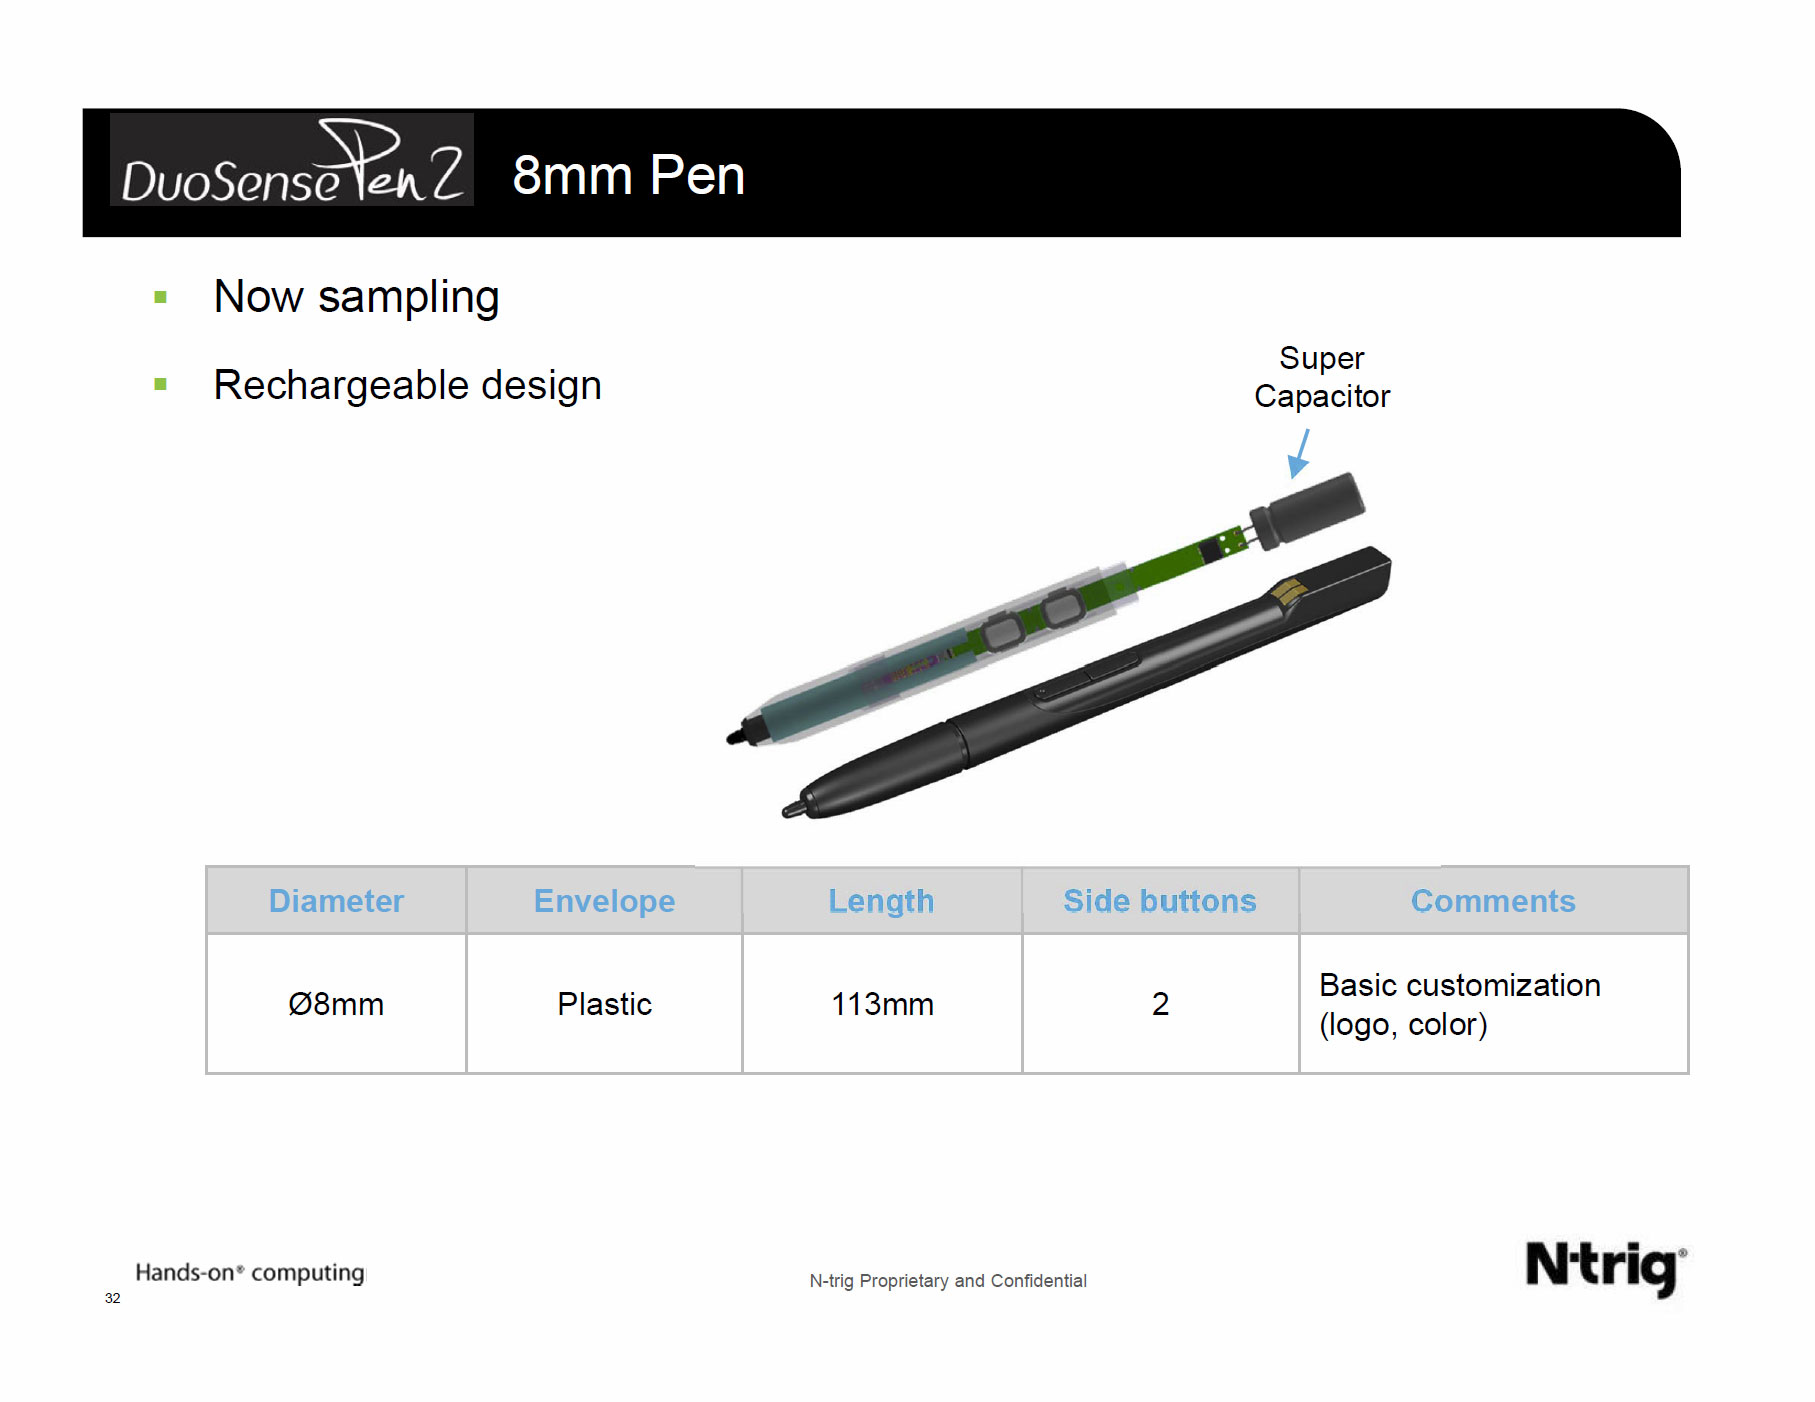 N-trig DuoSense Pen2: Who Needs a Stylus?